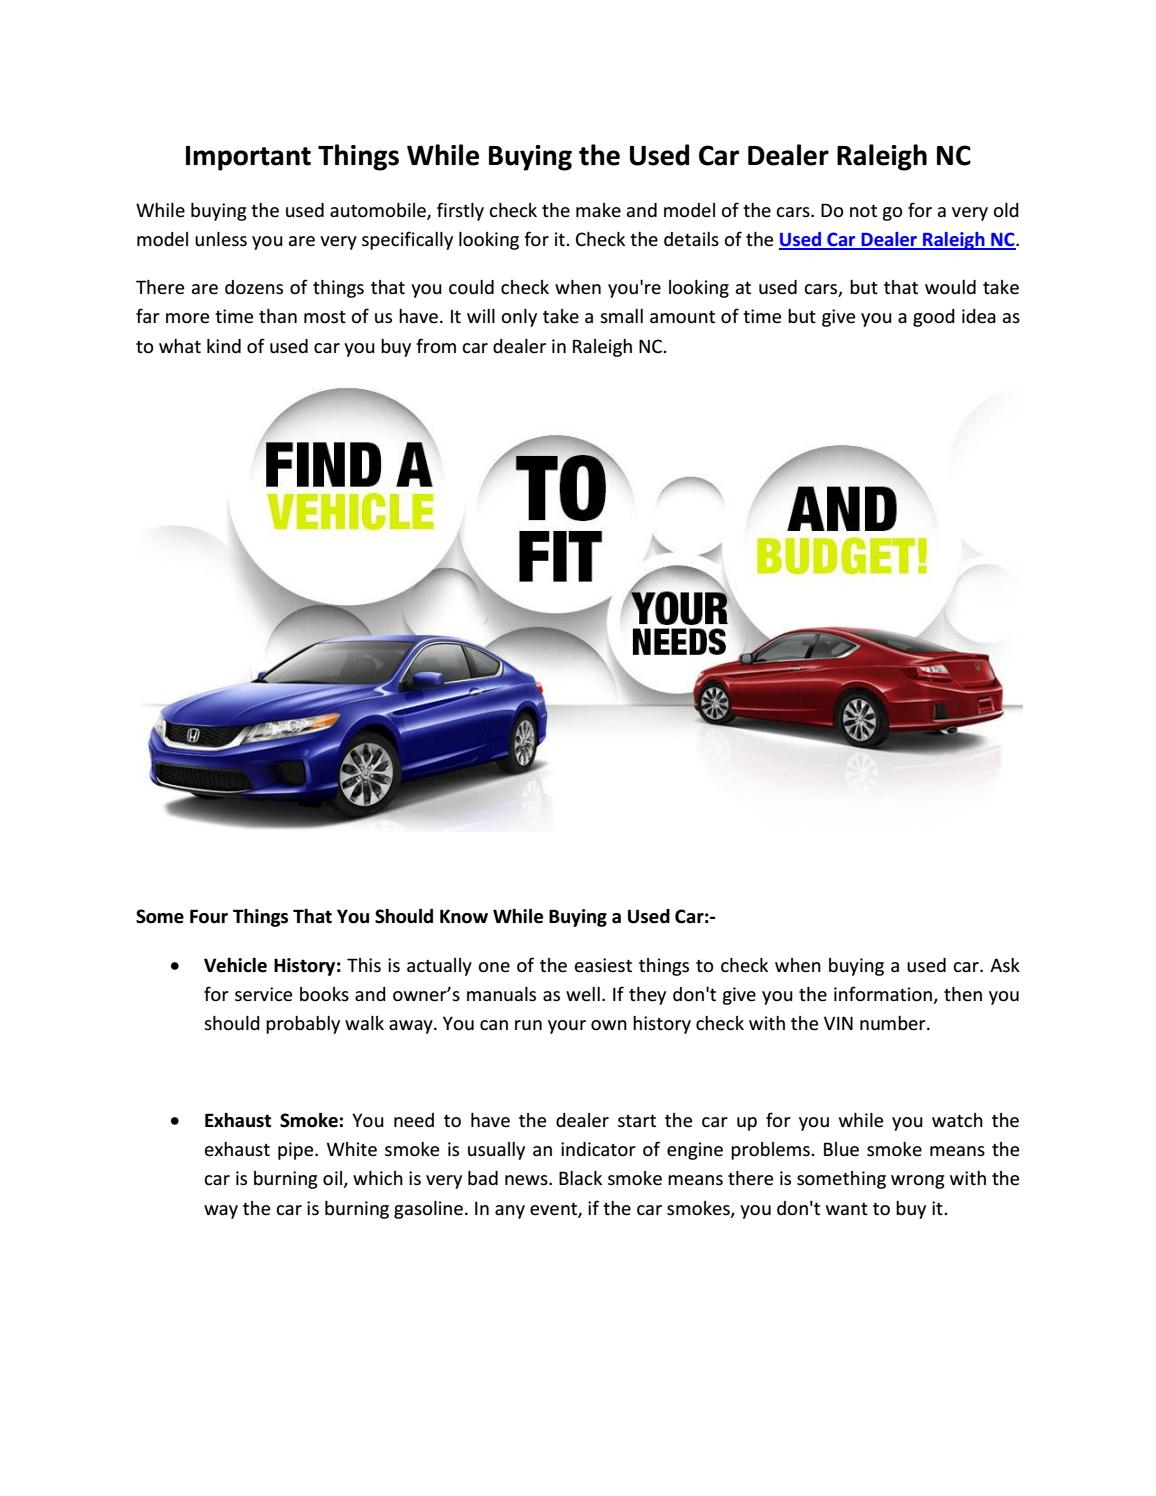 Raleigh Car Dealerships >> Important Things While Buying The Used Car Dealer Raleigh Nc